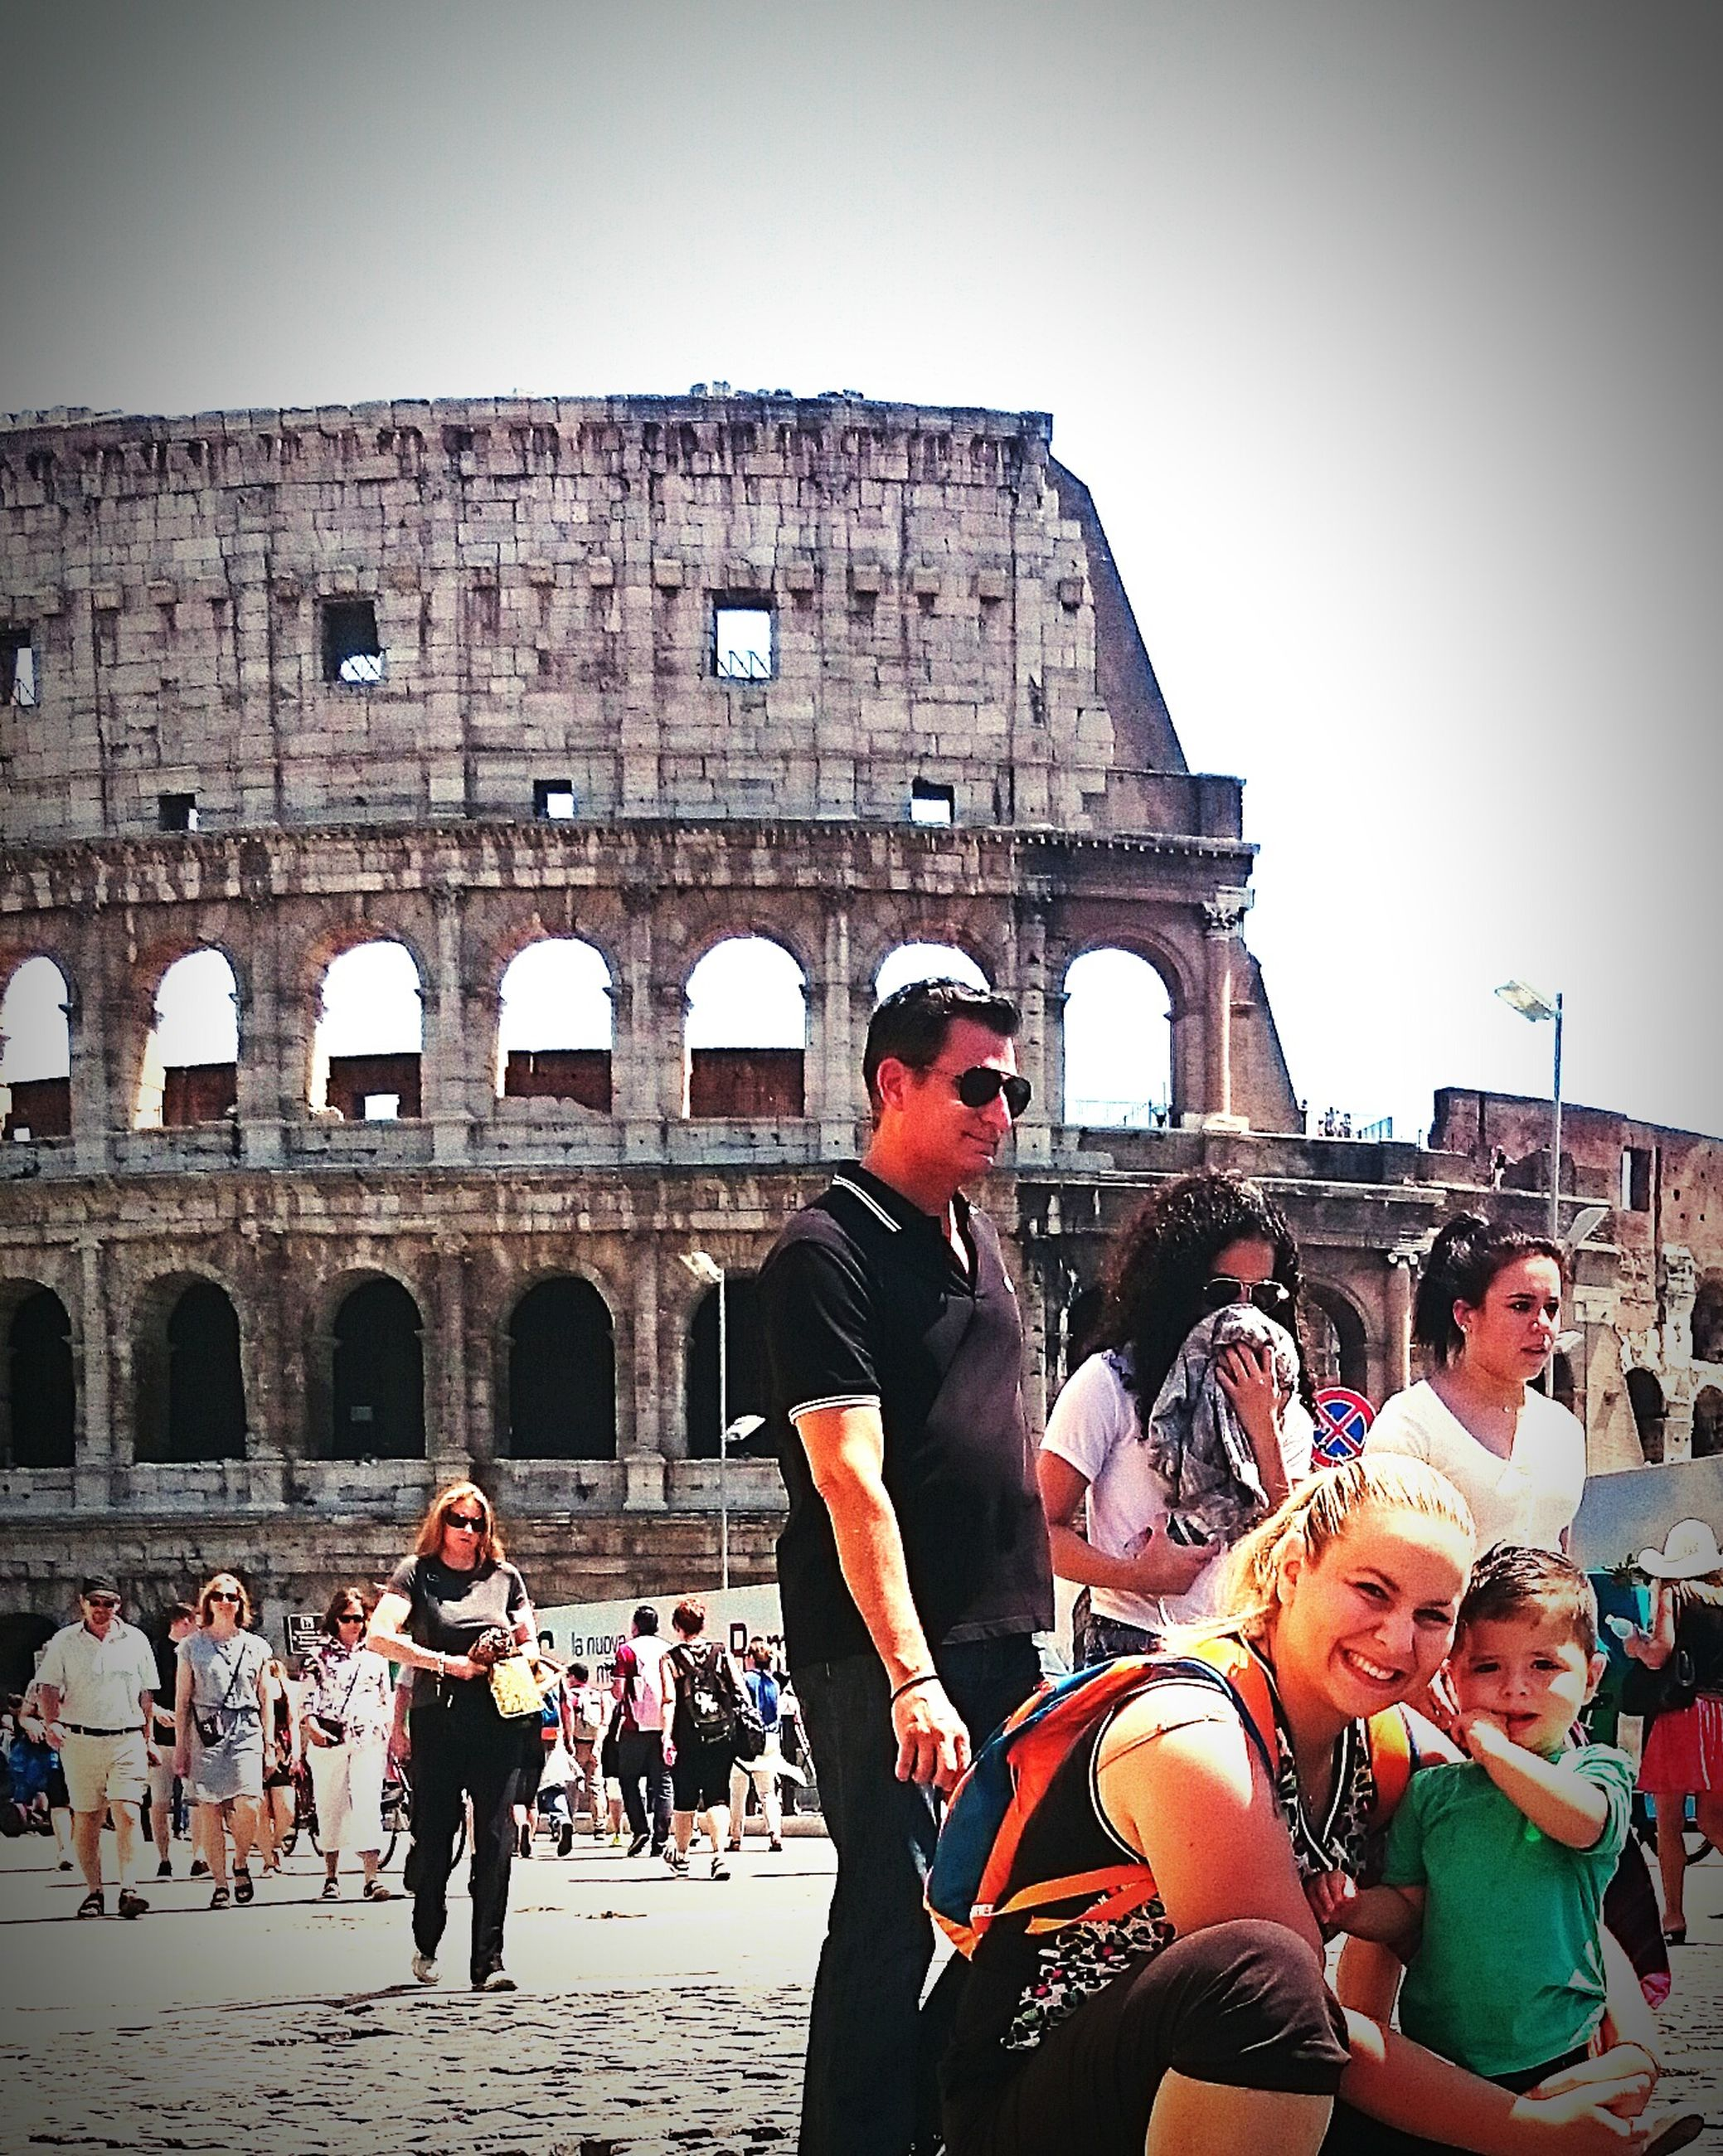 lifestyles, leisure activity, architecture, large group of people, built structure, building exterior, tourism, casual clothing, young adult, person, tourist, togetherness, young women, vacations, men, famous place, travel destinations